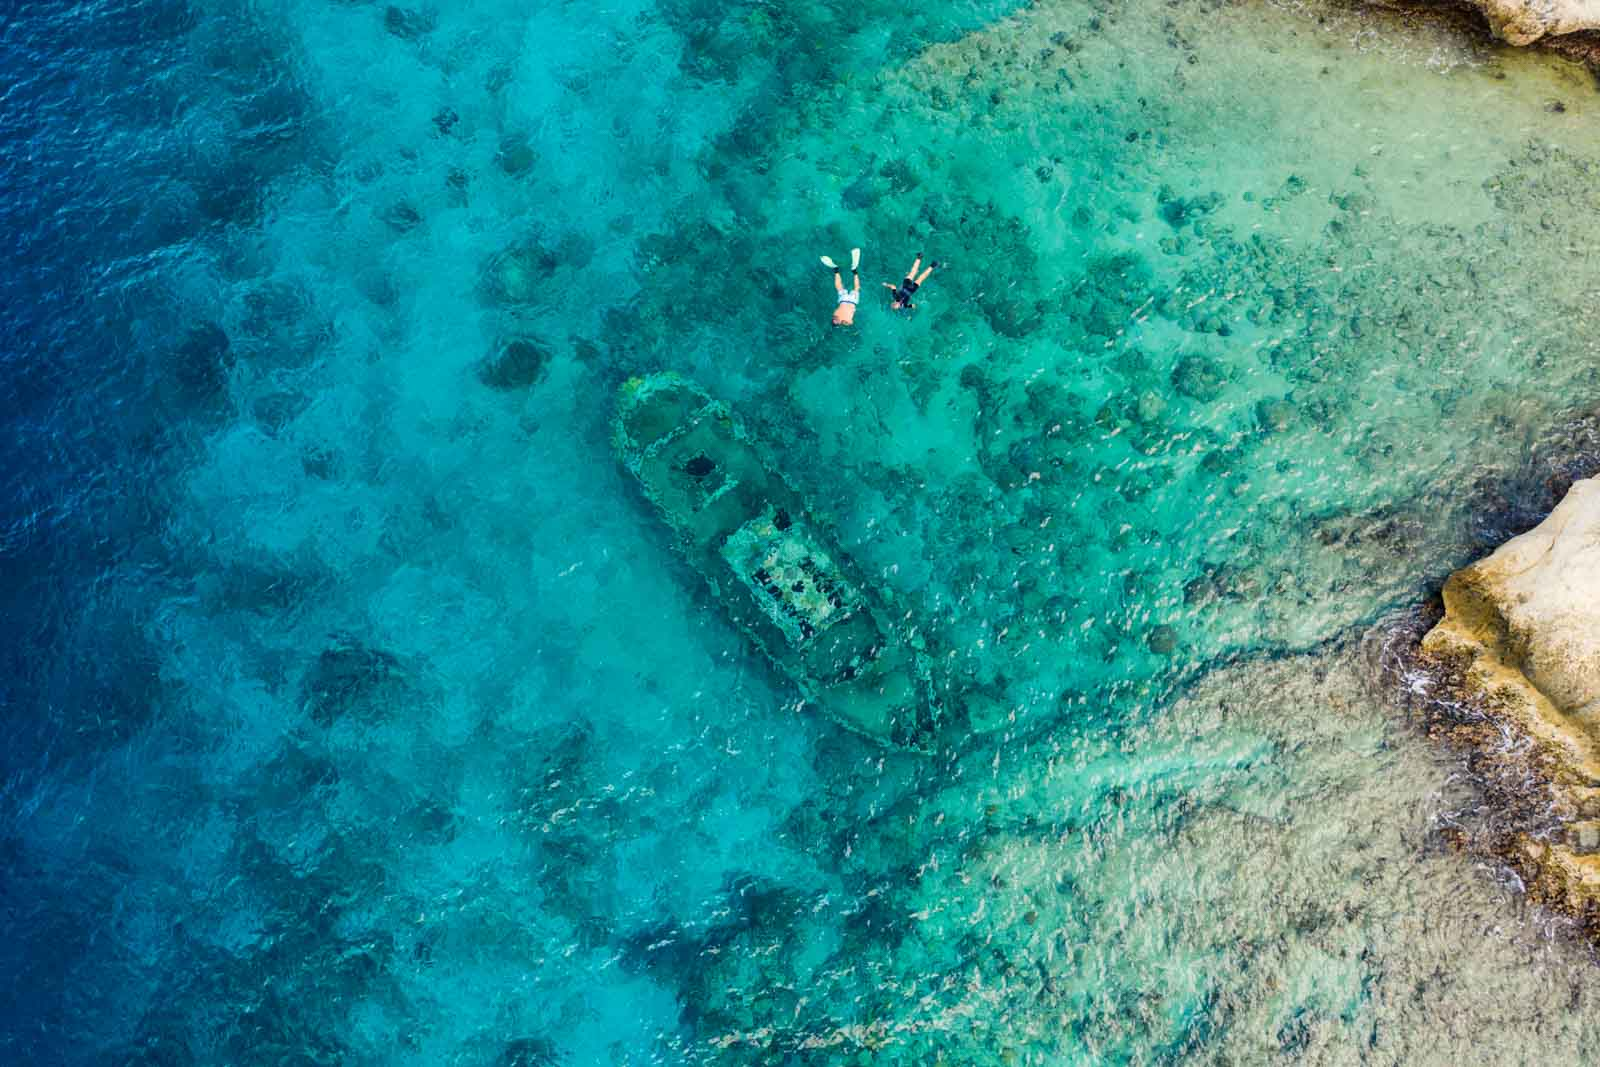 Overhead view of Tugboat Beach in Aruba, showing two people snorkeling in the water